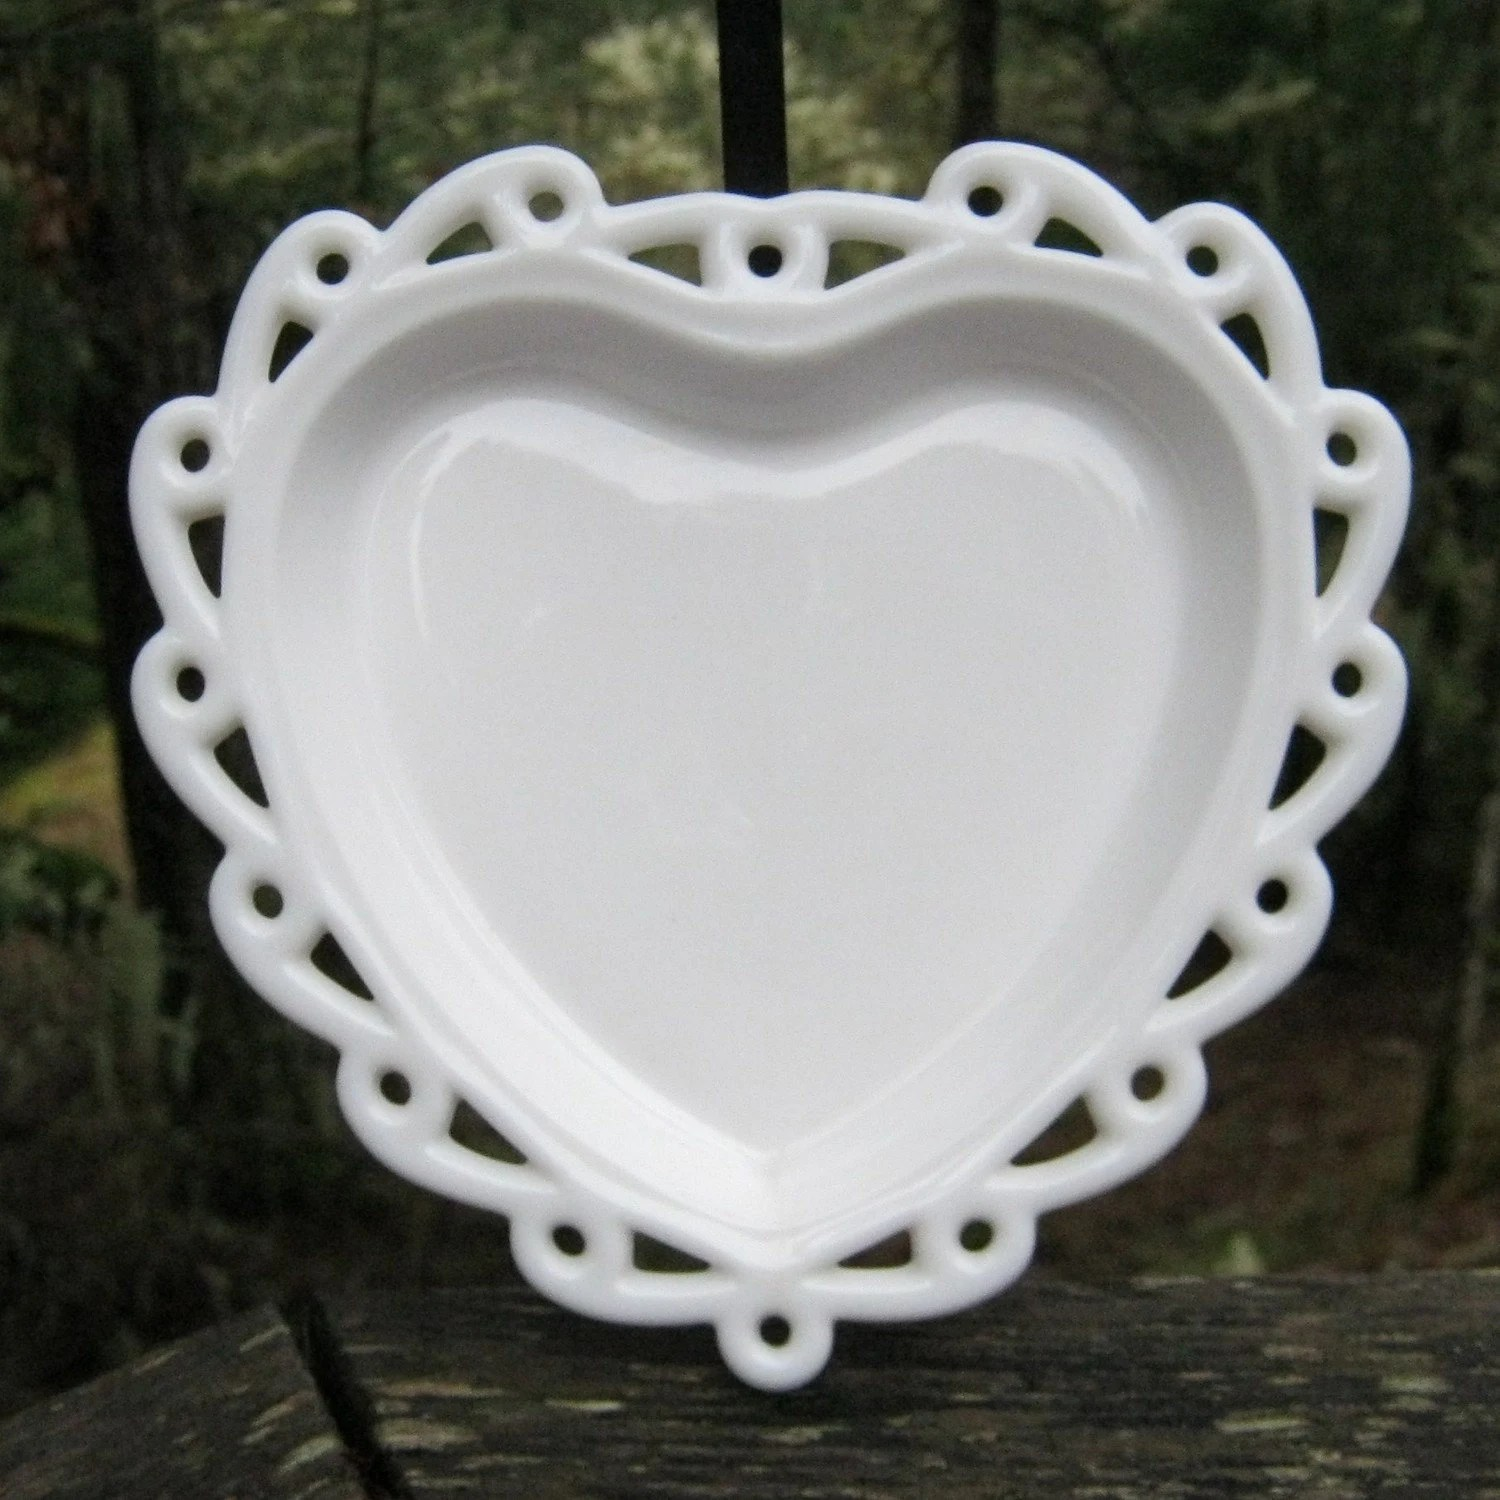 SALE Milk Glass Heart Shaped Dish With Open Lace Edge